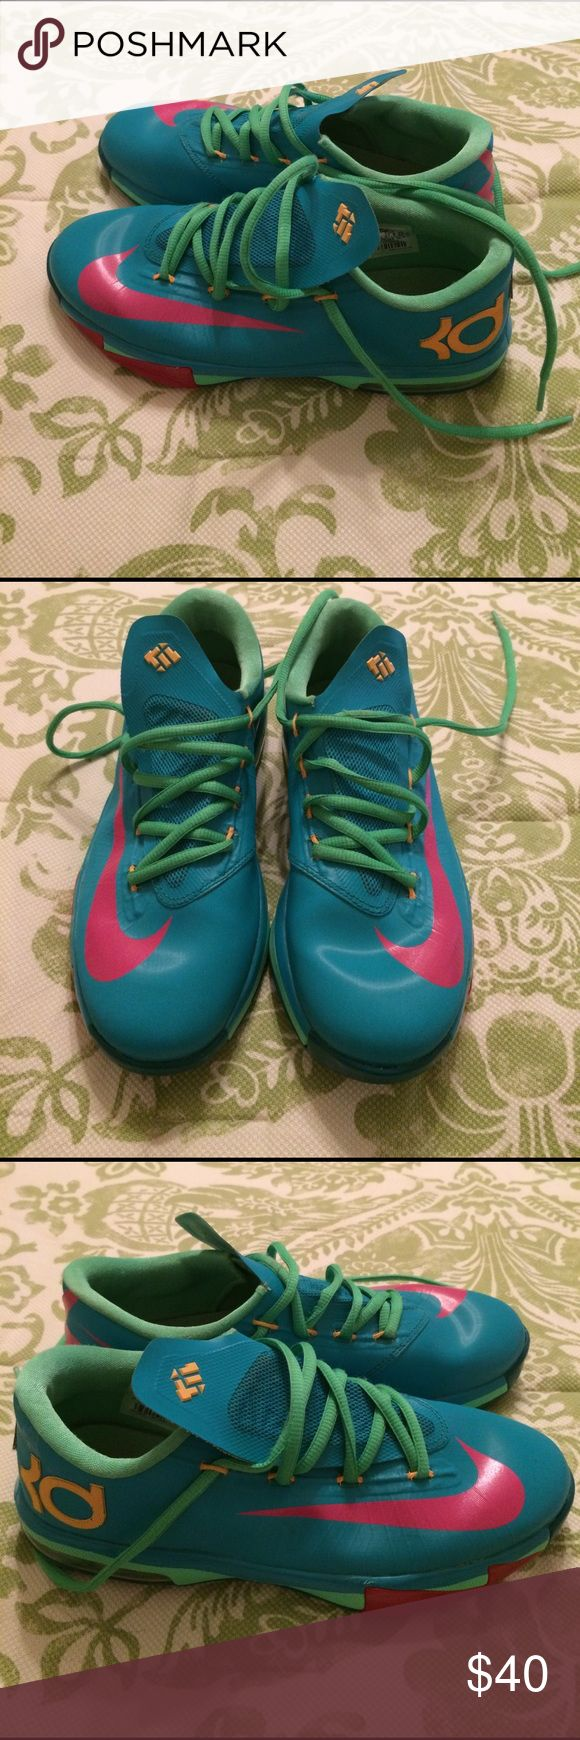 Nike KD shoes size 7 Nike KD shoes size 7 in women's but they are actually a size 5 in girls. In good slightly used condition with minor wear. Only worn a few times. Nike Shoes Athletic Shoes